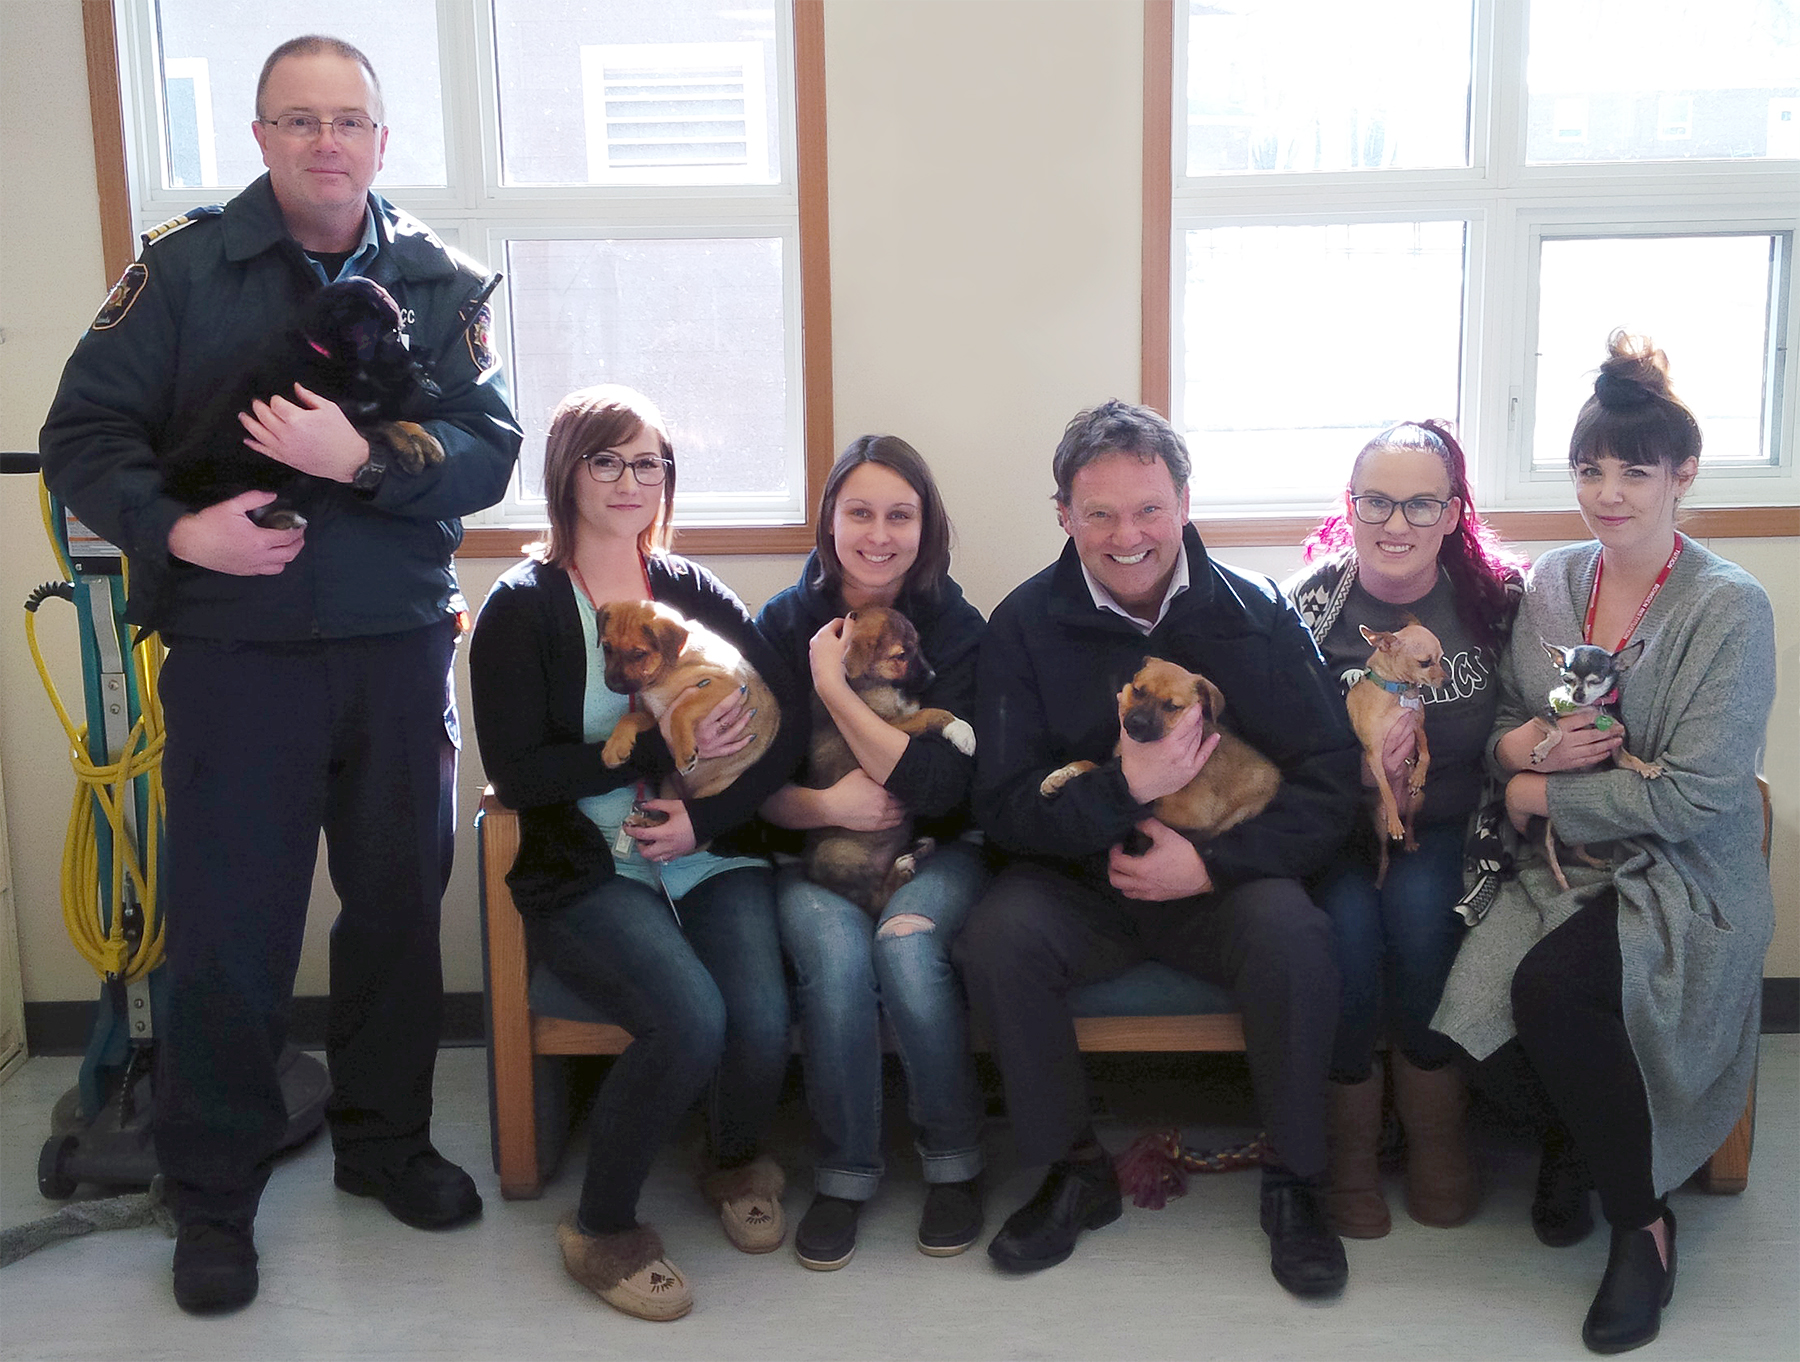 A photo of the group involved in organizing the Pet Enrichment Group